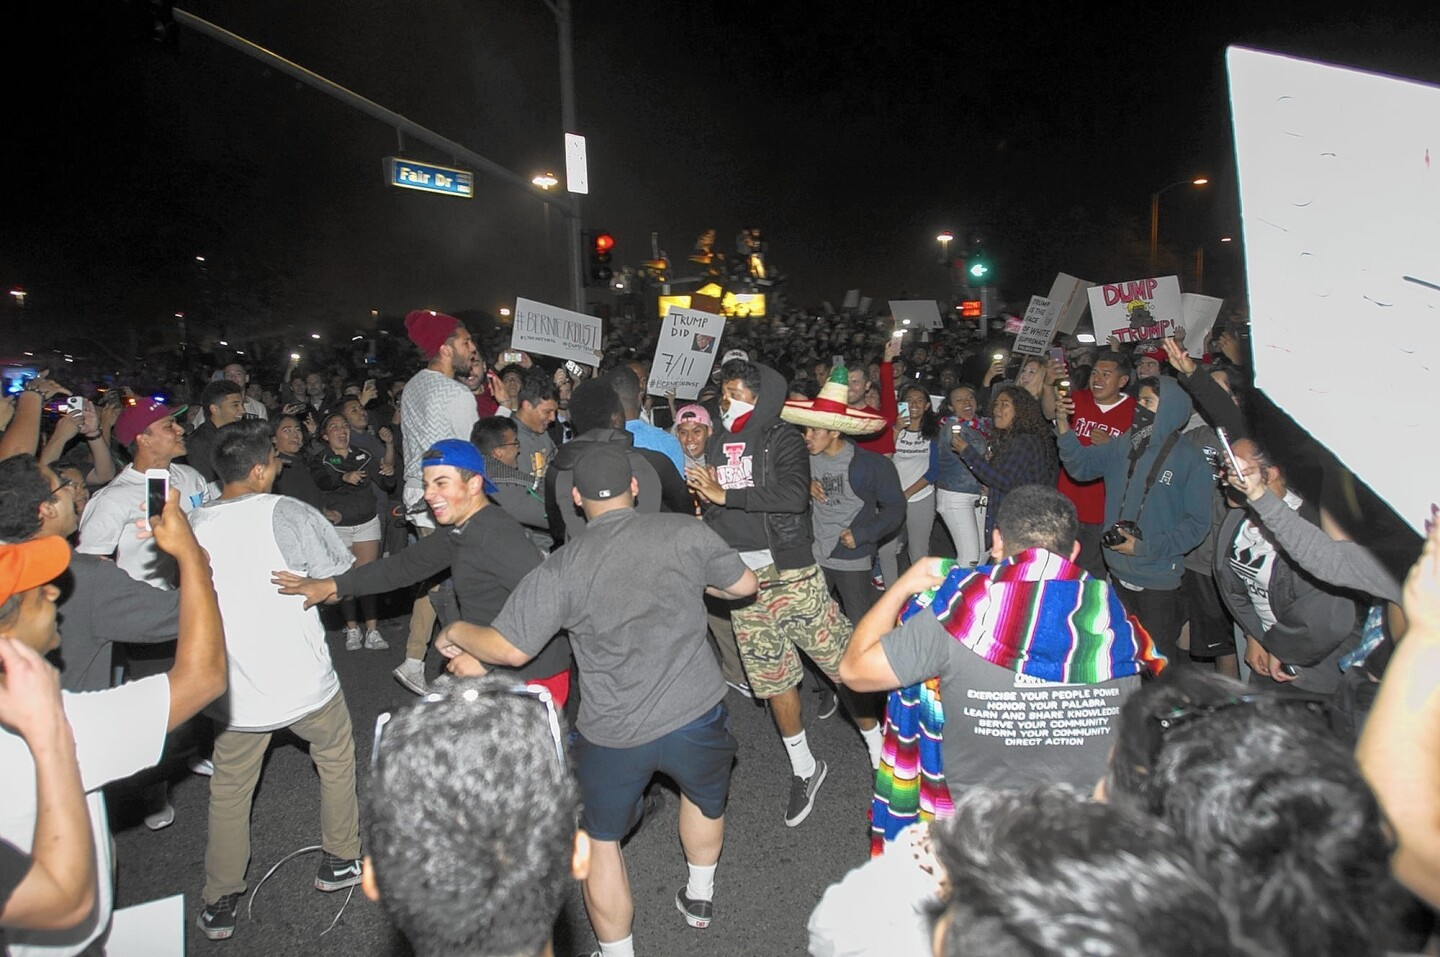 A crowd blocks the street at the corner of Fairview Road and Fair Drive in Costa Mesa on Thursday following a Donald Trump rally at the Orange County fairgrounds.